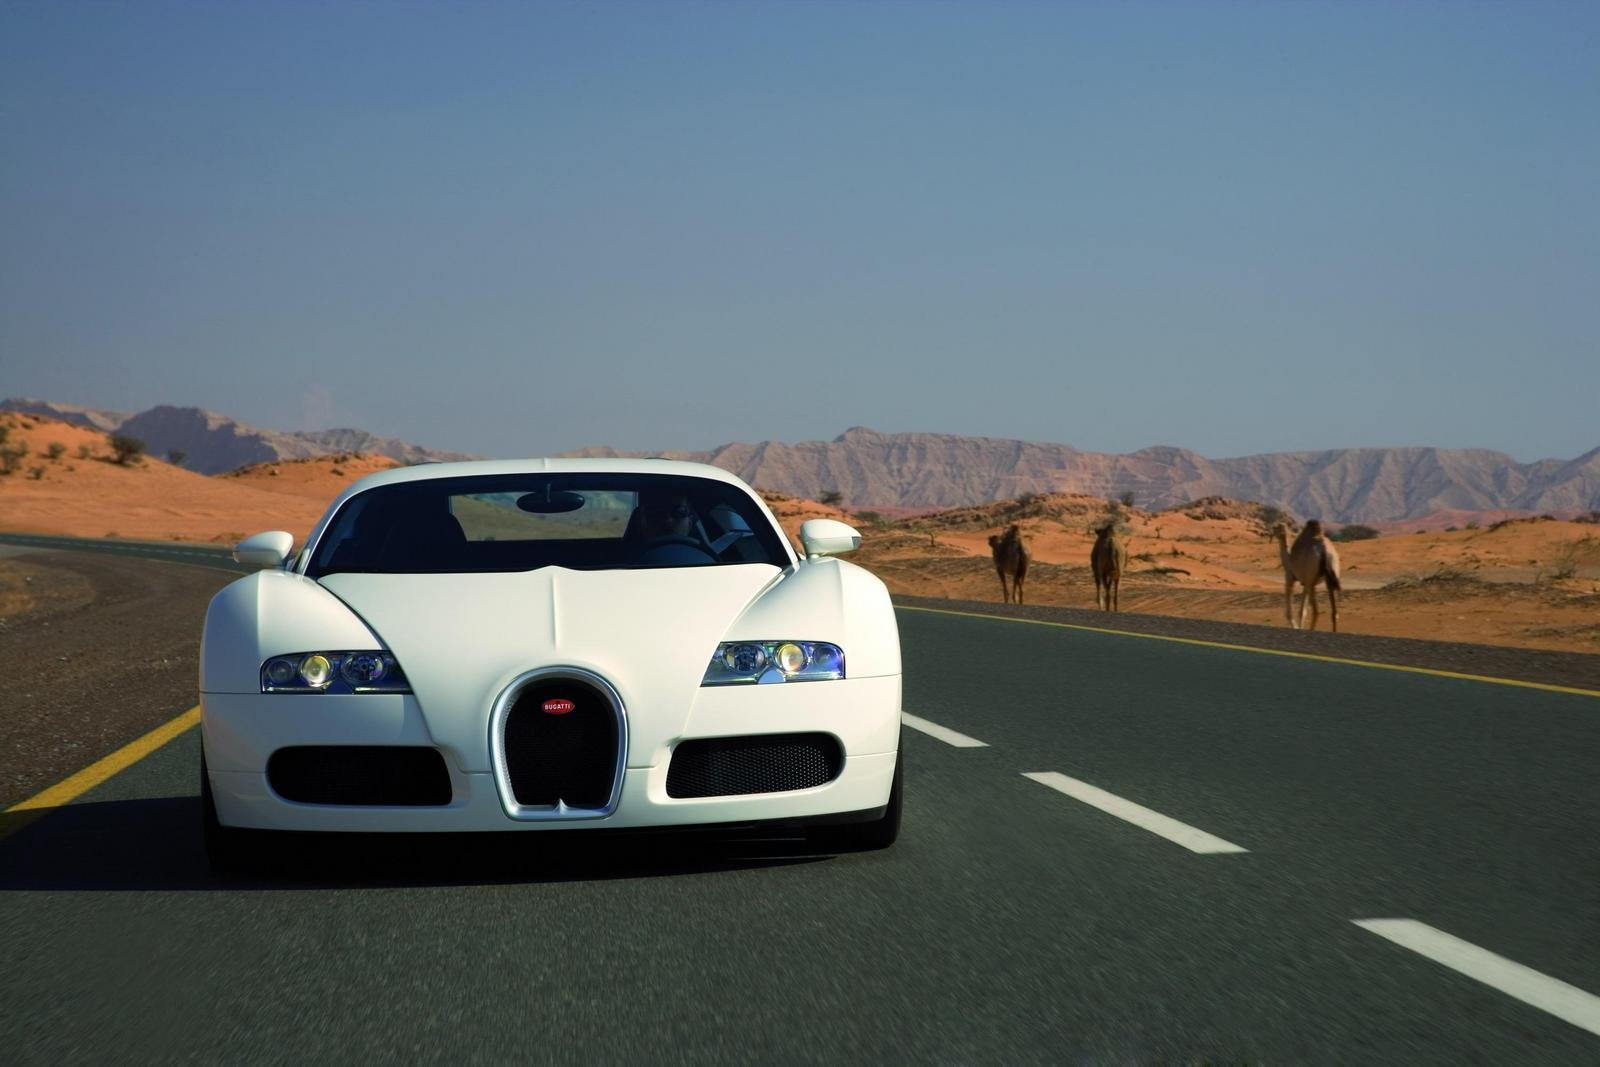 2006 bugatti veyron 16 4 picture 287568 car review top speed. Cars Review. Best American Auto & Cars Review